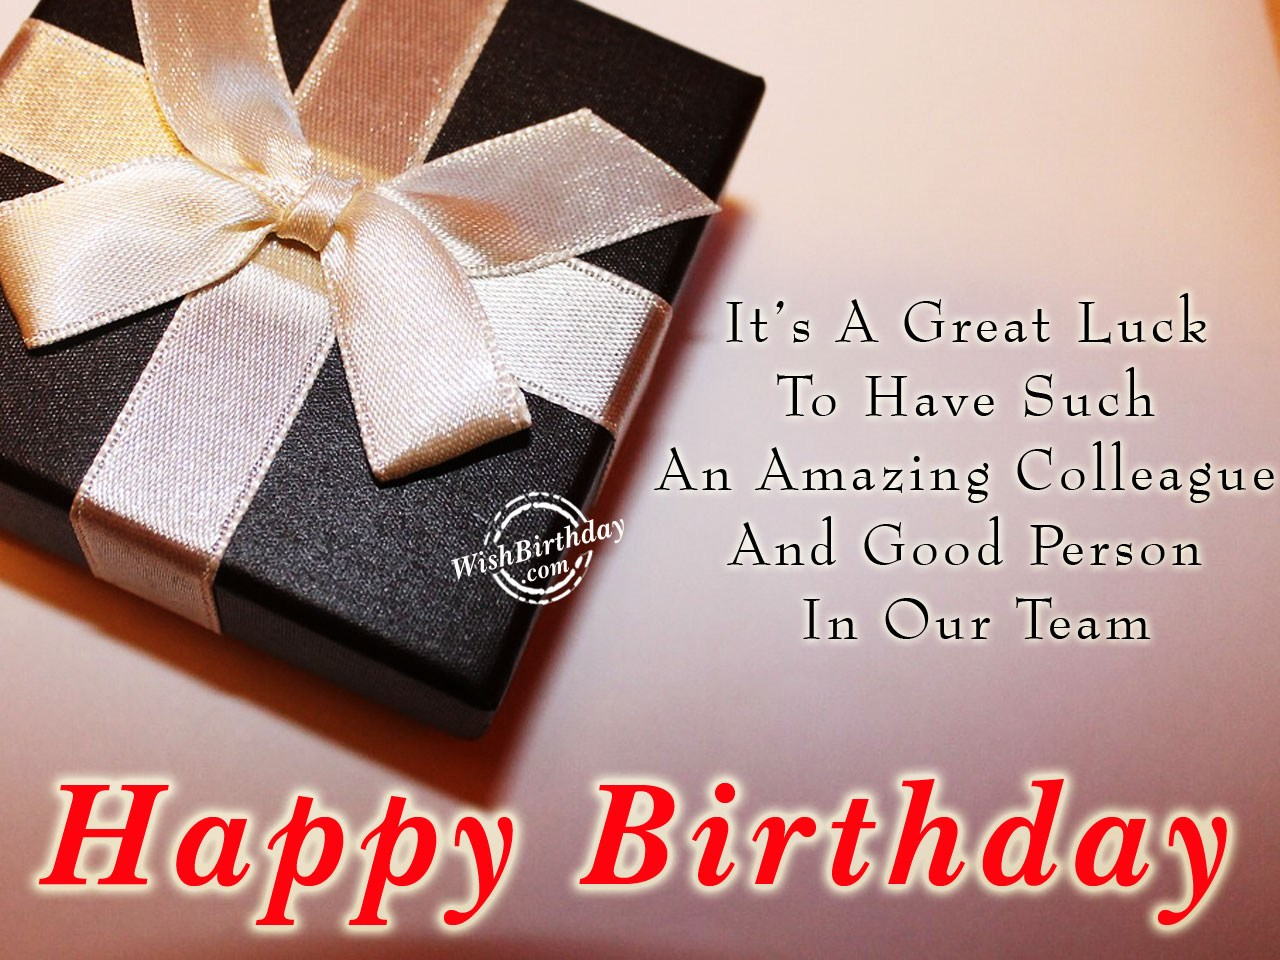 Happy Birthday Greetings For Friends And Family 27 Parryz